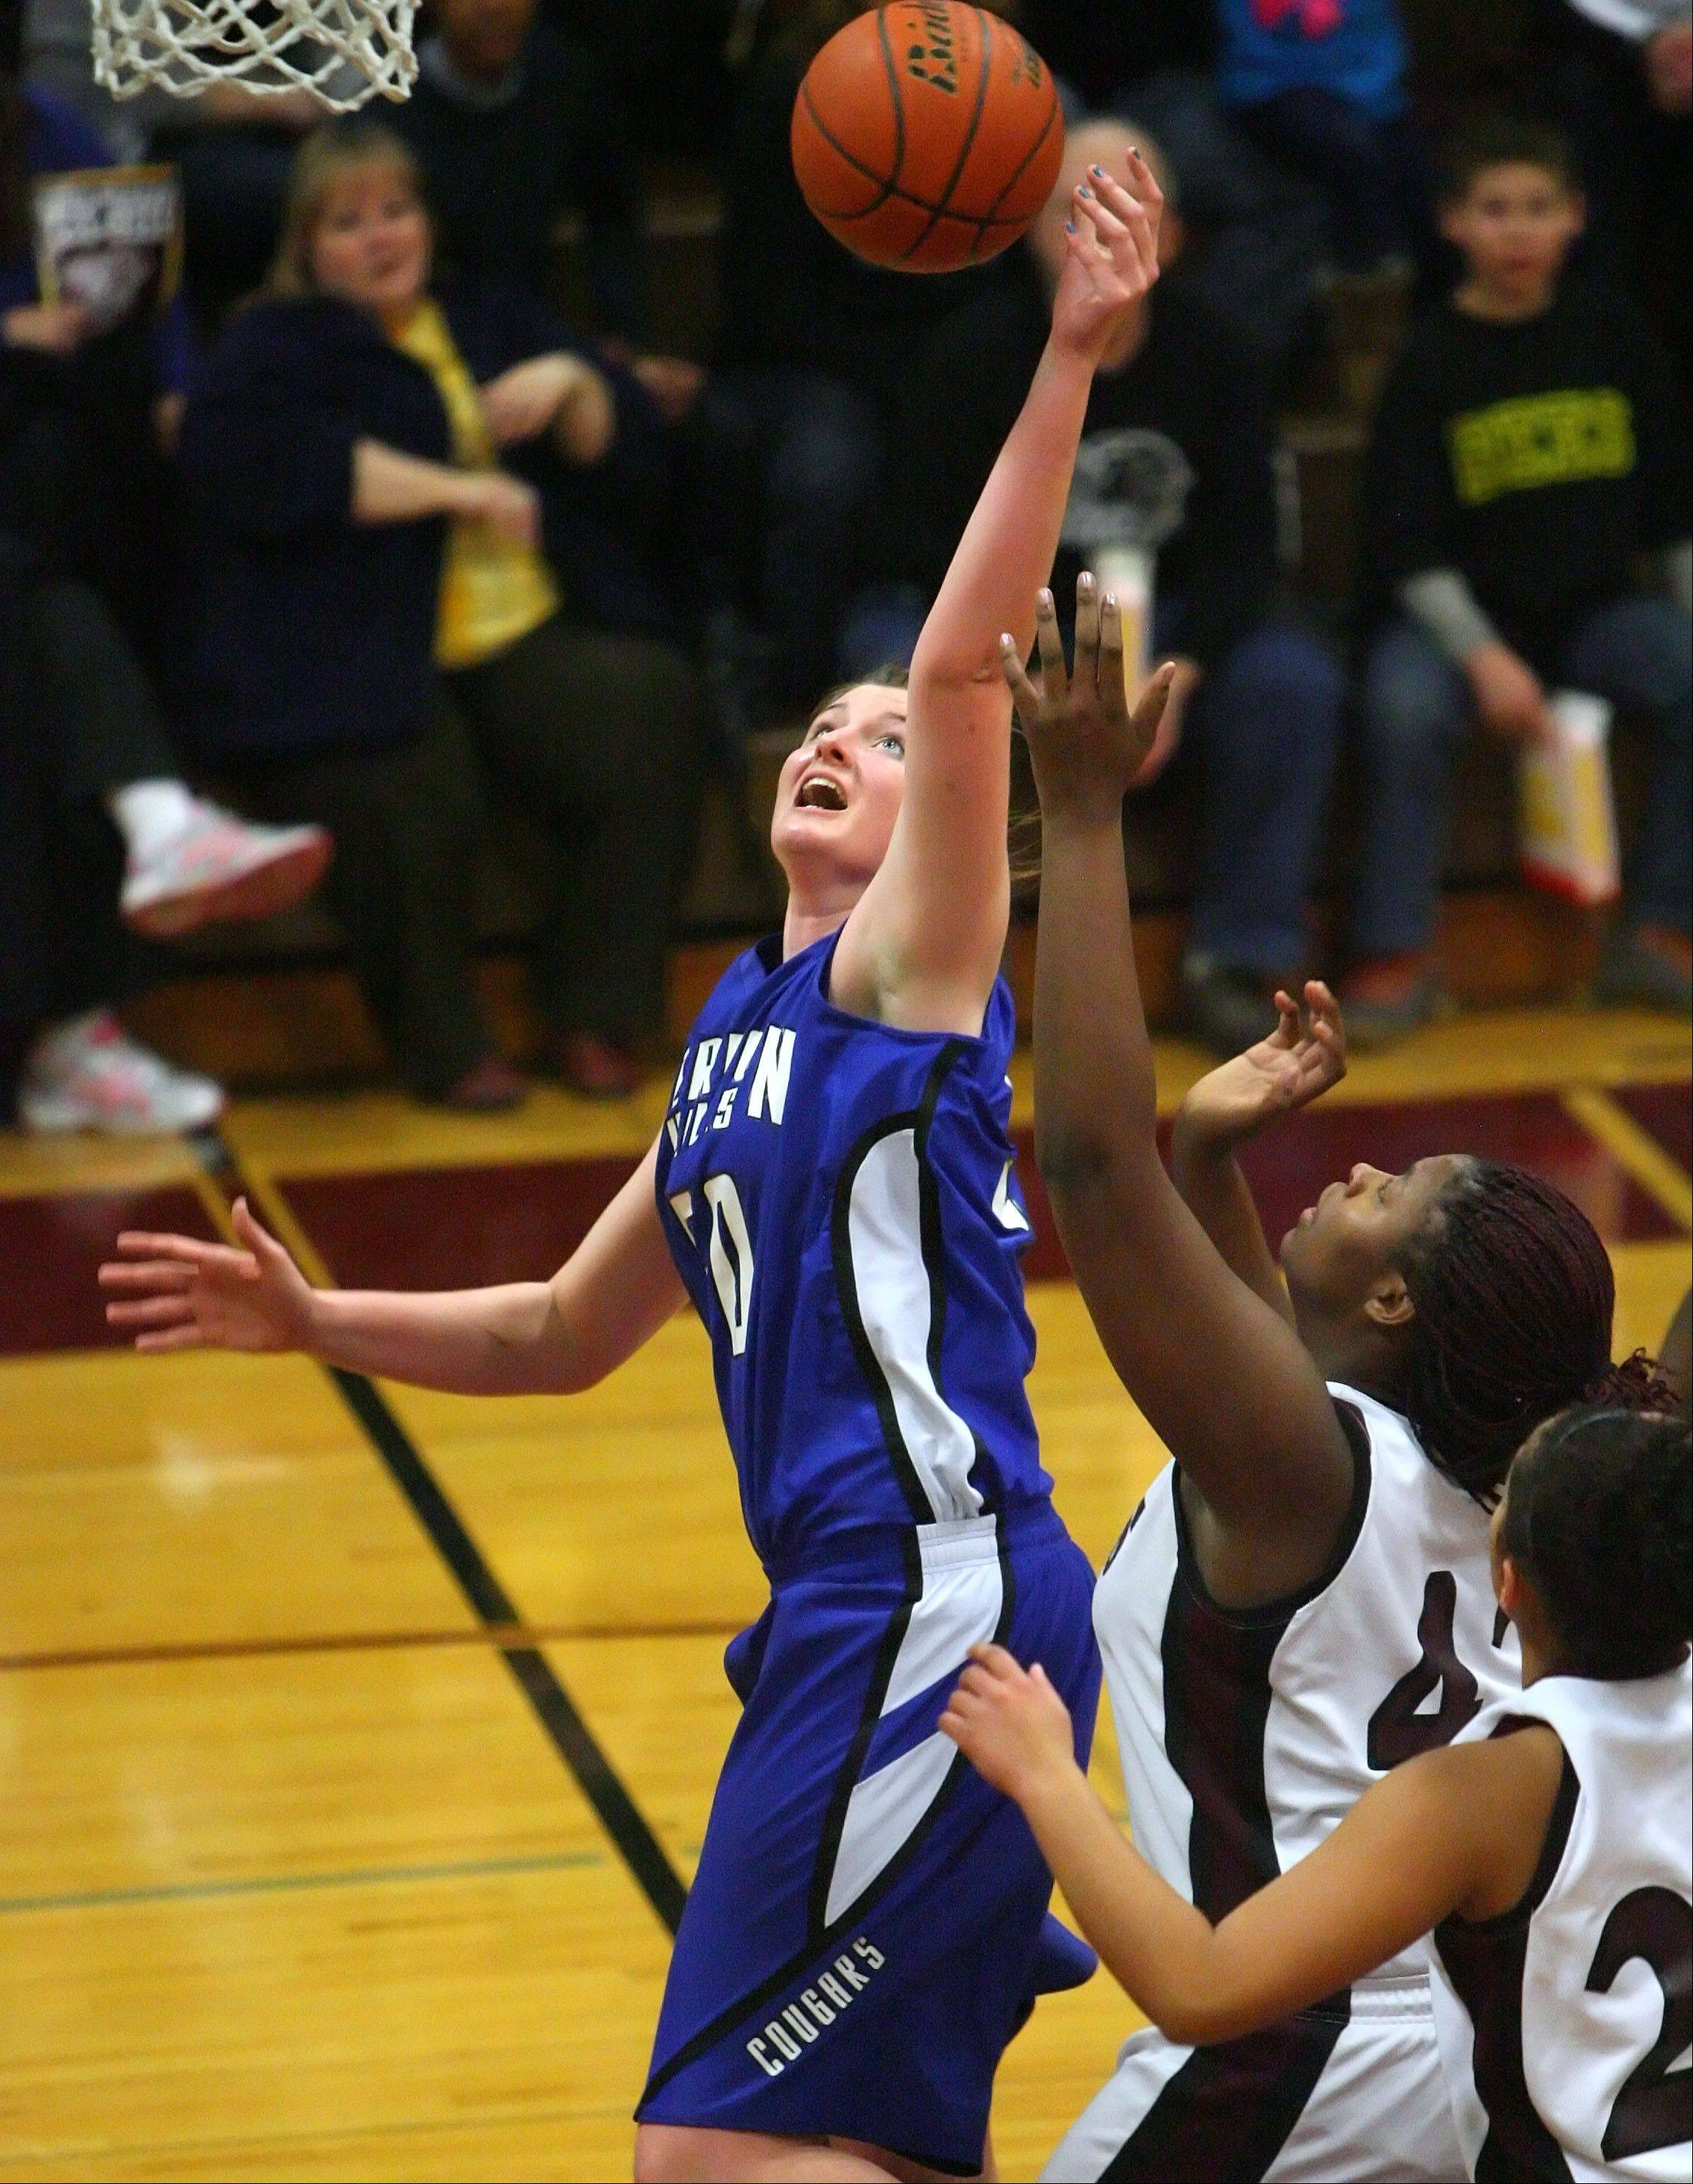 Vernon Hills' Meri Bennett-Swanson, left drives on Zion-Benton's Mia Yarbrough.